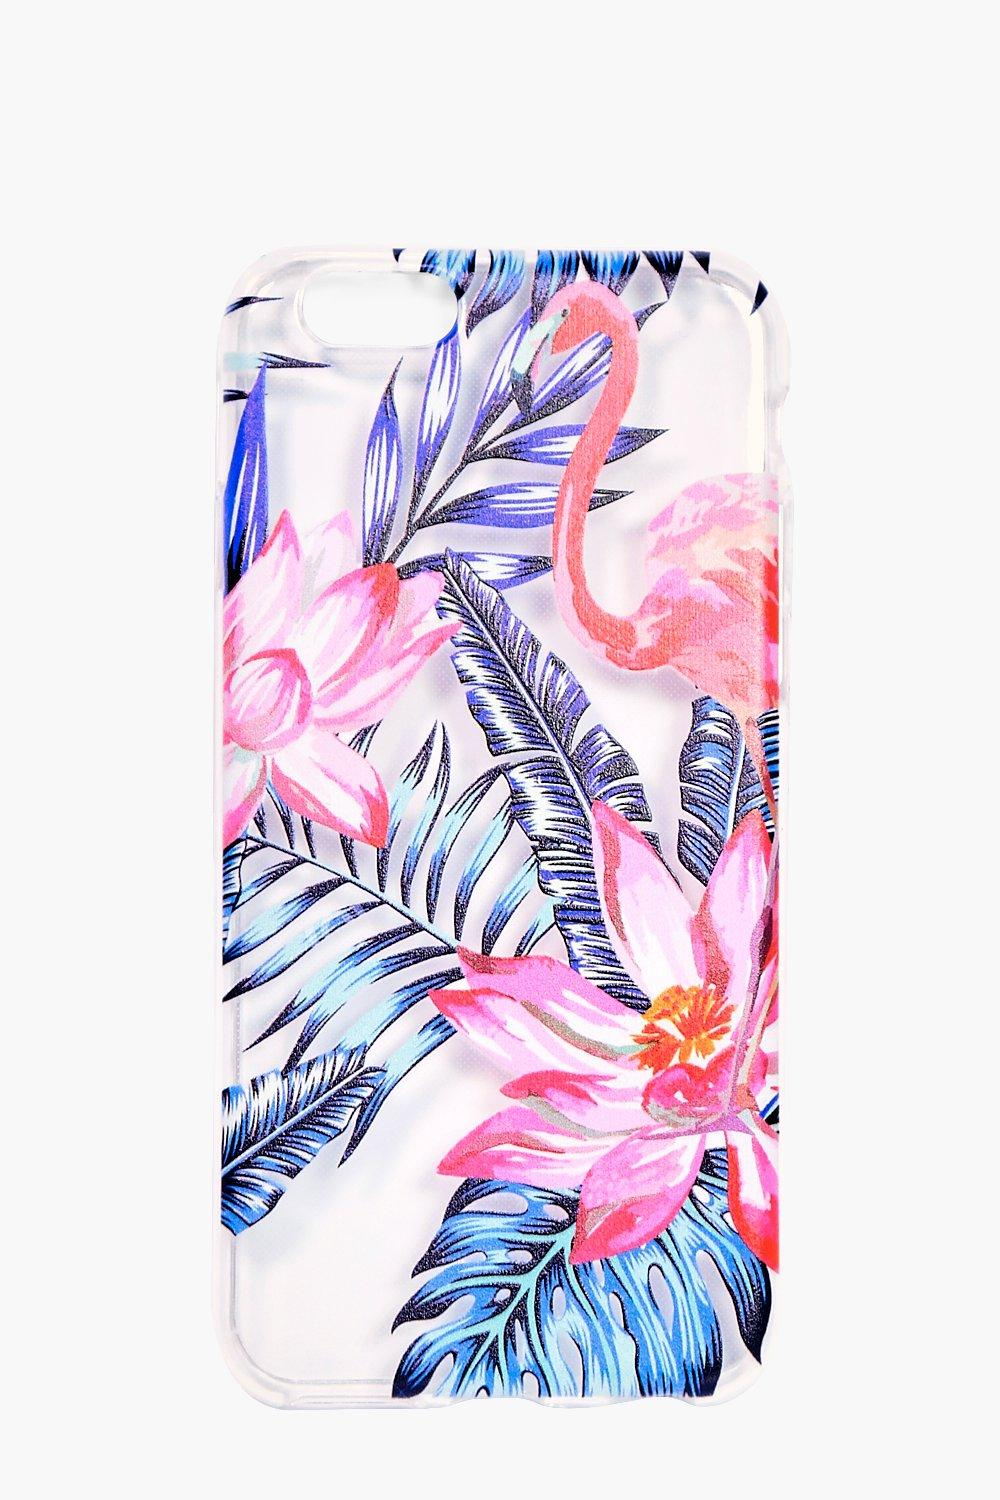 And Blue Tropical iPhone 6 Case - multi - Pink And